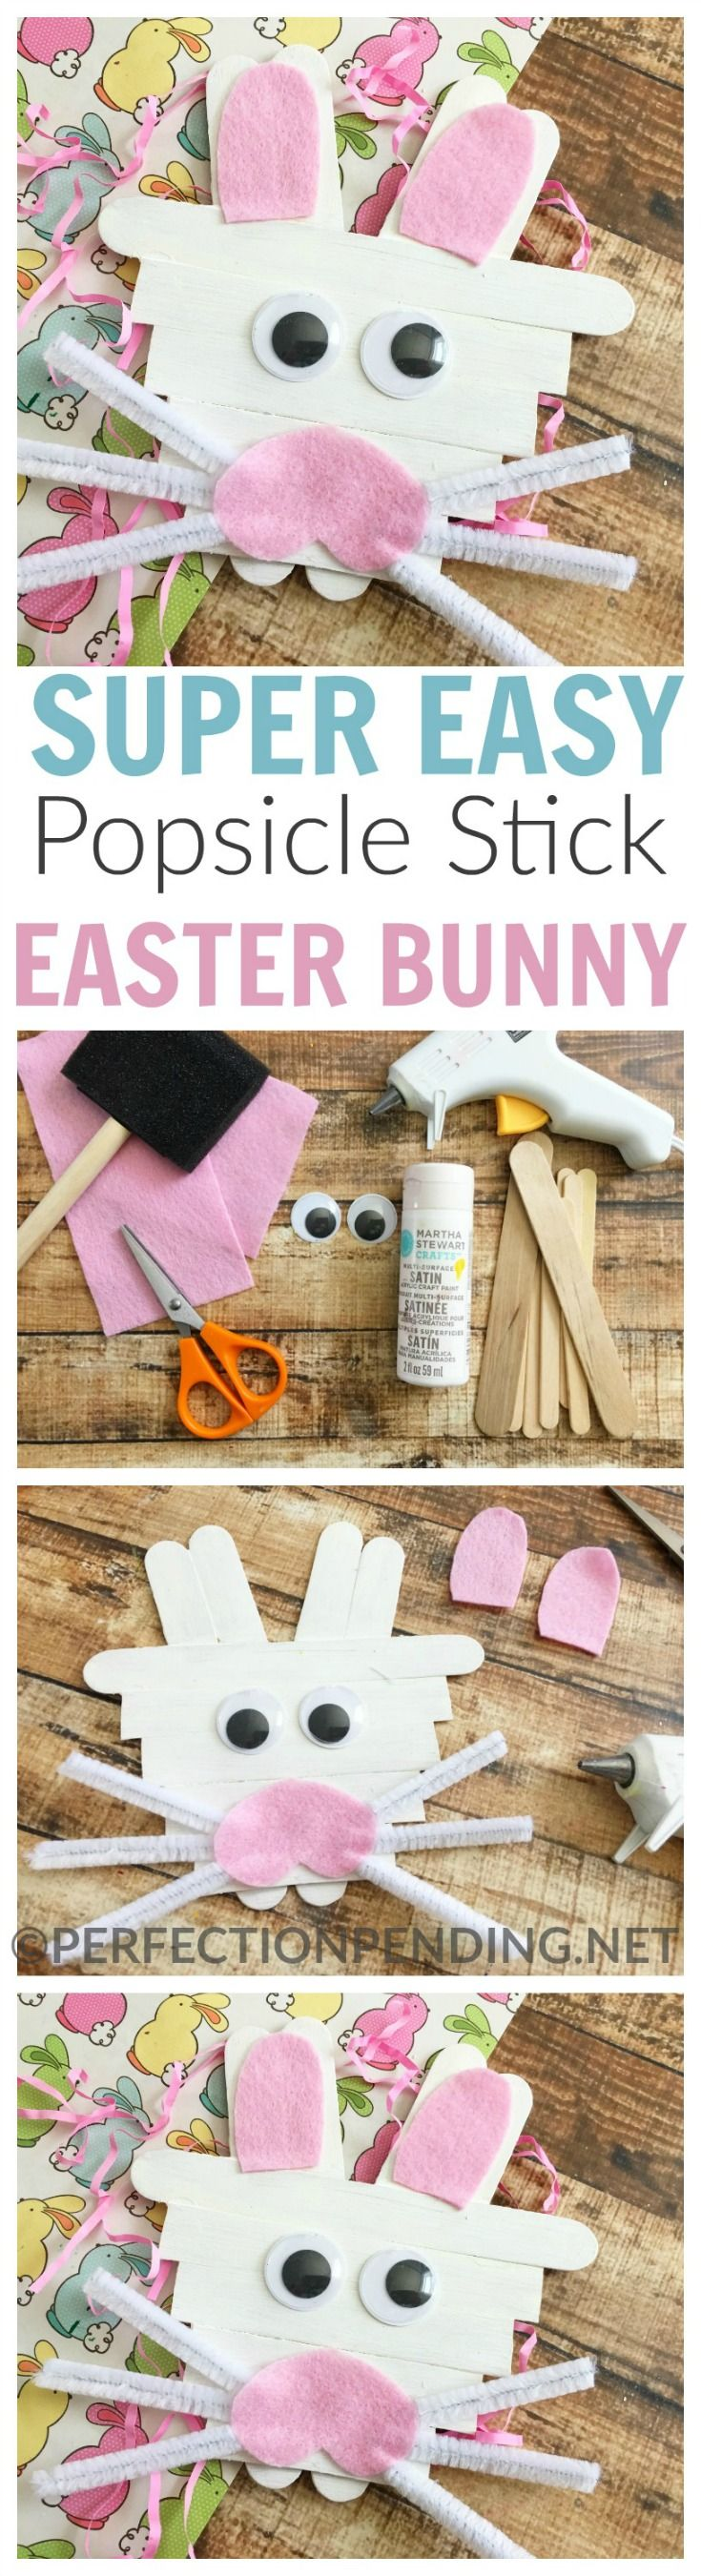 Easter is the perfect time to make an easy popsicle stick bunny craft with your kids. This easy kid craft for Easter uses popsicle sticks, felt, and other craft supplies that you probably already have on hand. If you're looking for a simple Easter craft that even your preschoolers can do, then this is it!